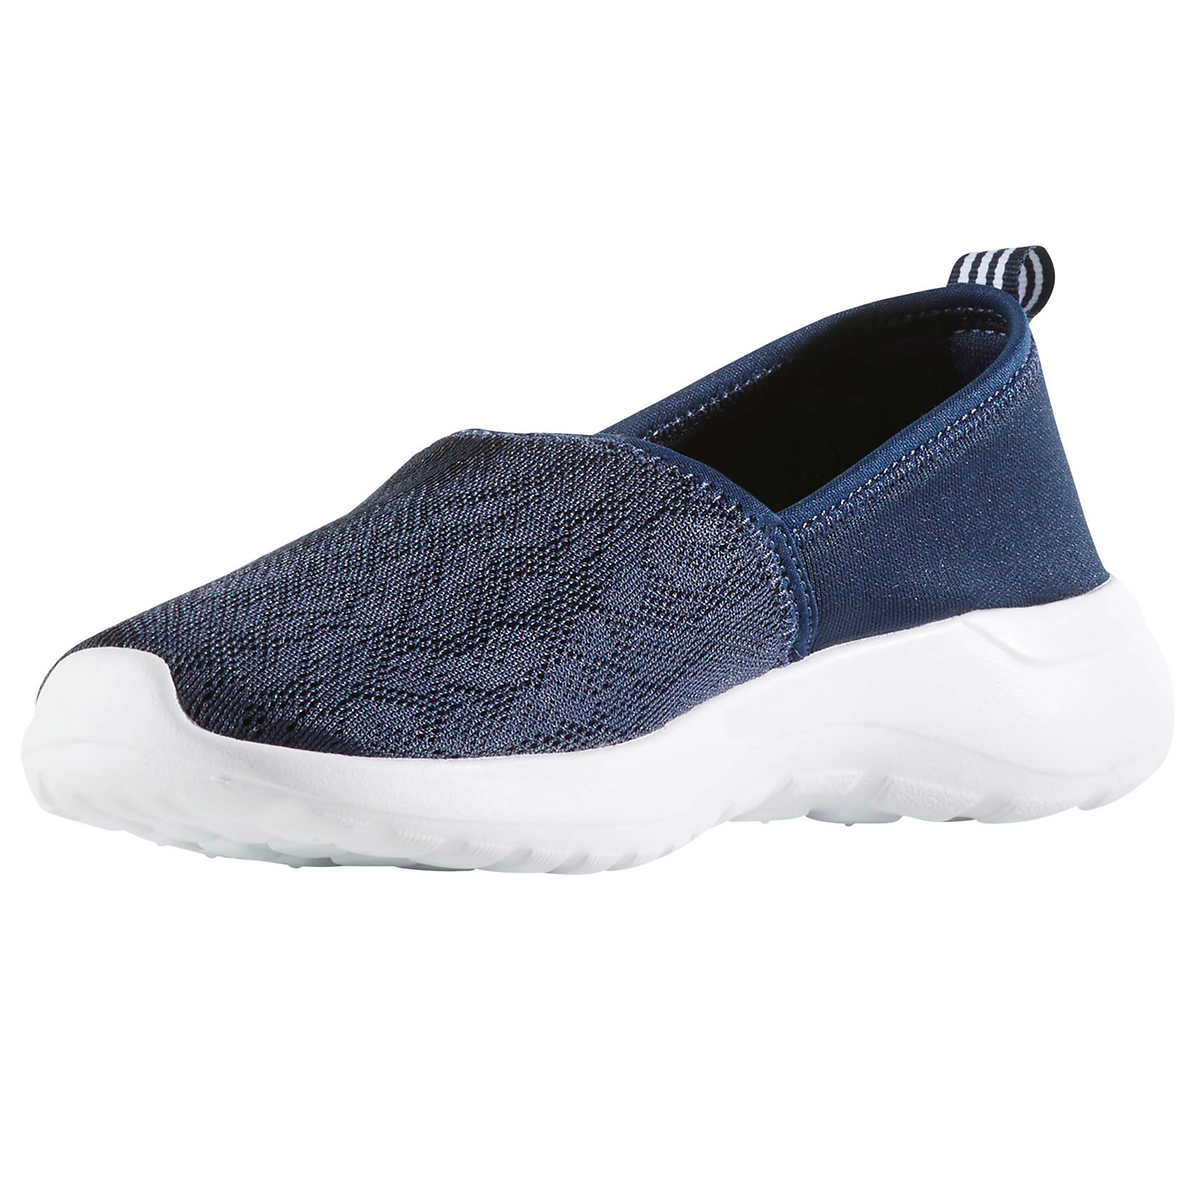 Adidas Women s Cloudfoam Lite Racer Slip On Shoe New Without Box  a6b07b6a8